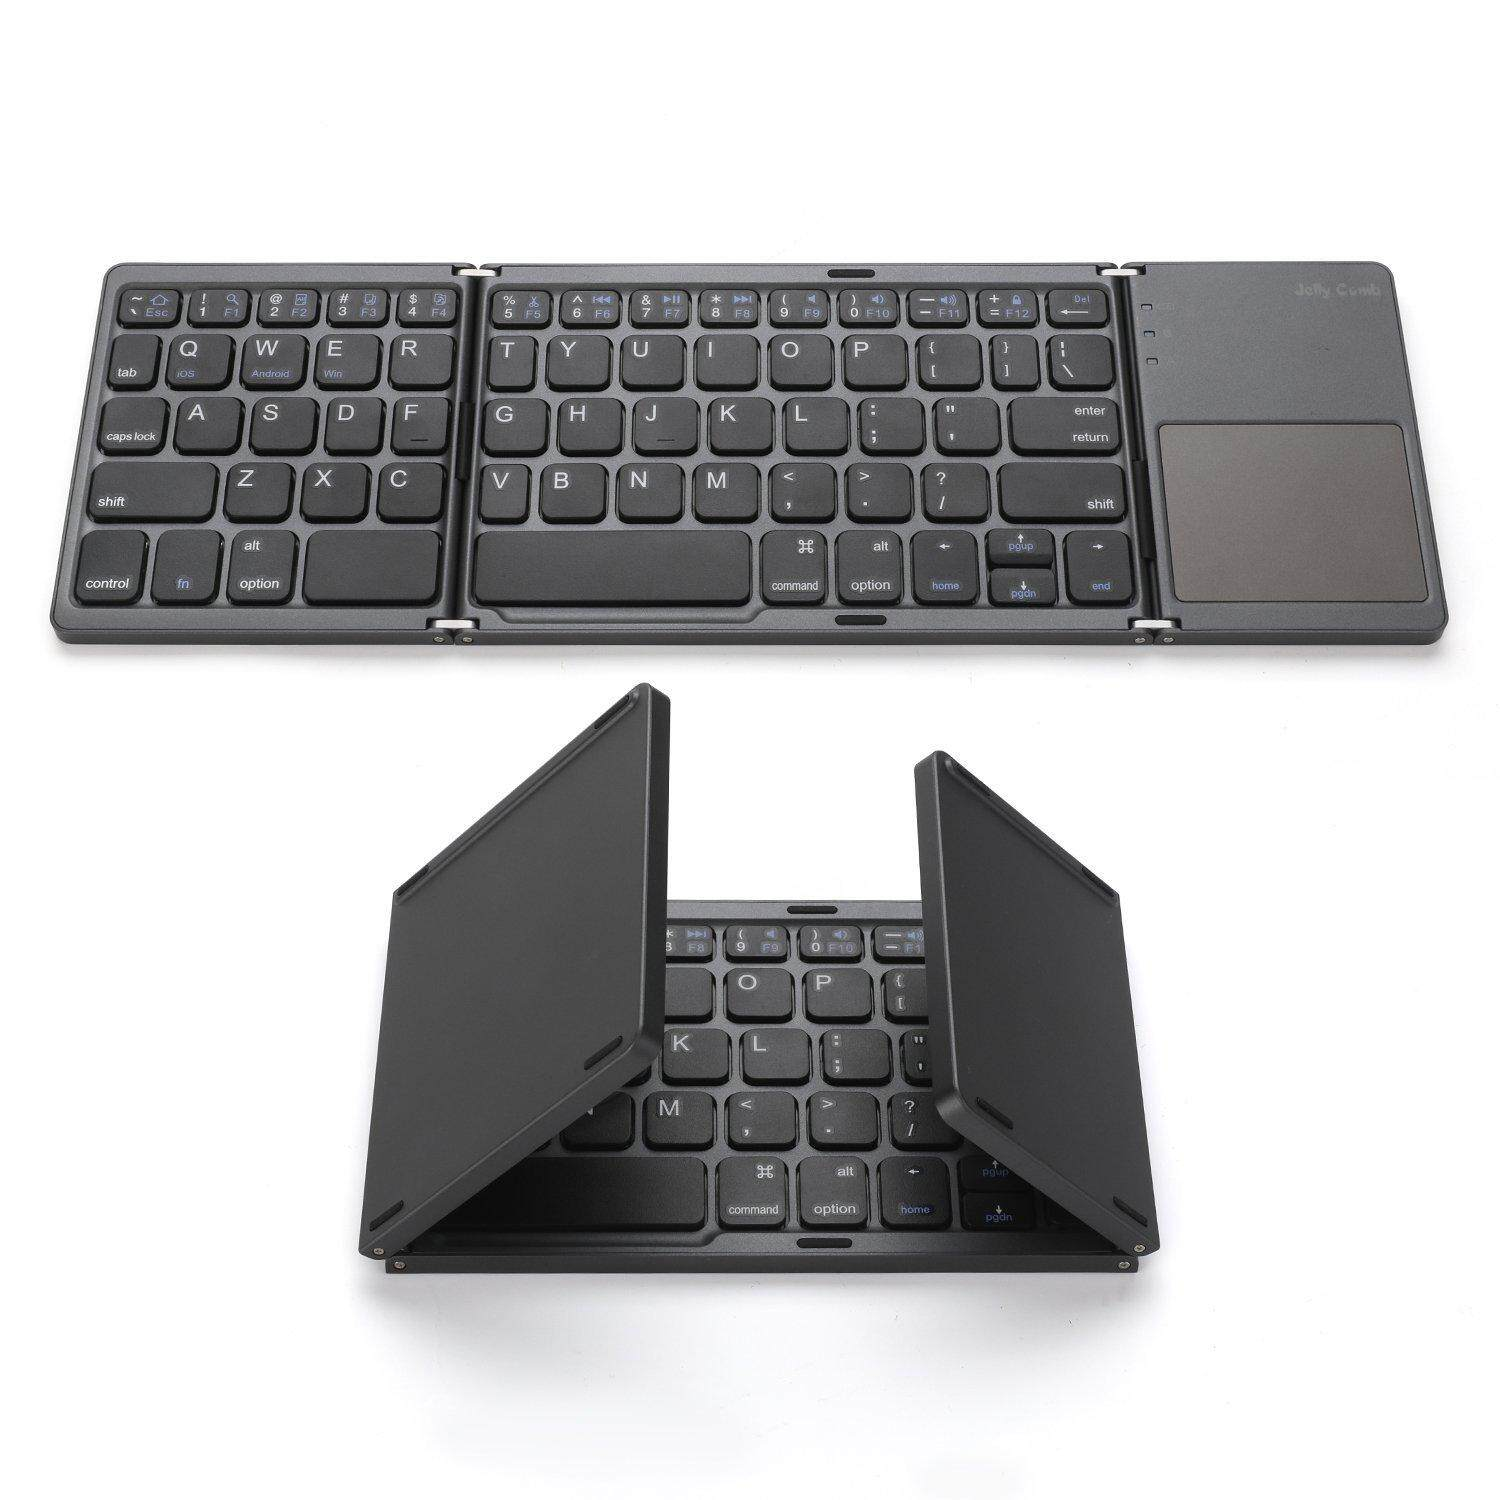 Universal Wireless Bluetooth 3.0 Foldable Keyboard with Touchpad Ultra Slim Mini Lightweight for iPhone iPad Samsung Tablet Malaysia